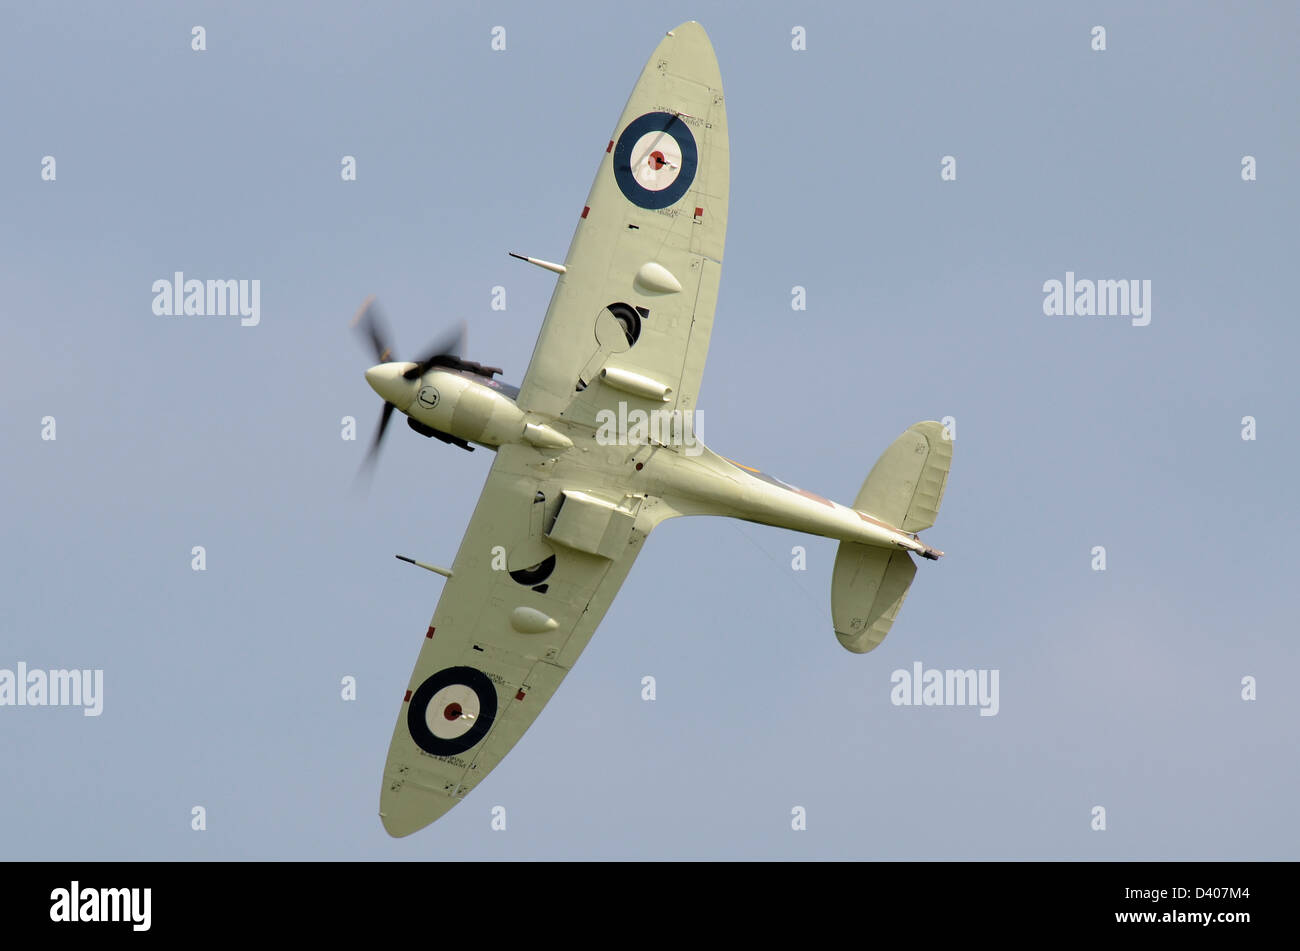 Spitfire V banking away to show its classic elliptical wing profile and RAF roundels and radiator configuration - Stock Image